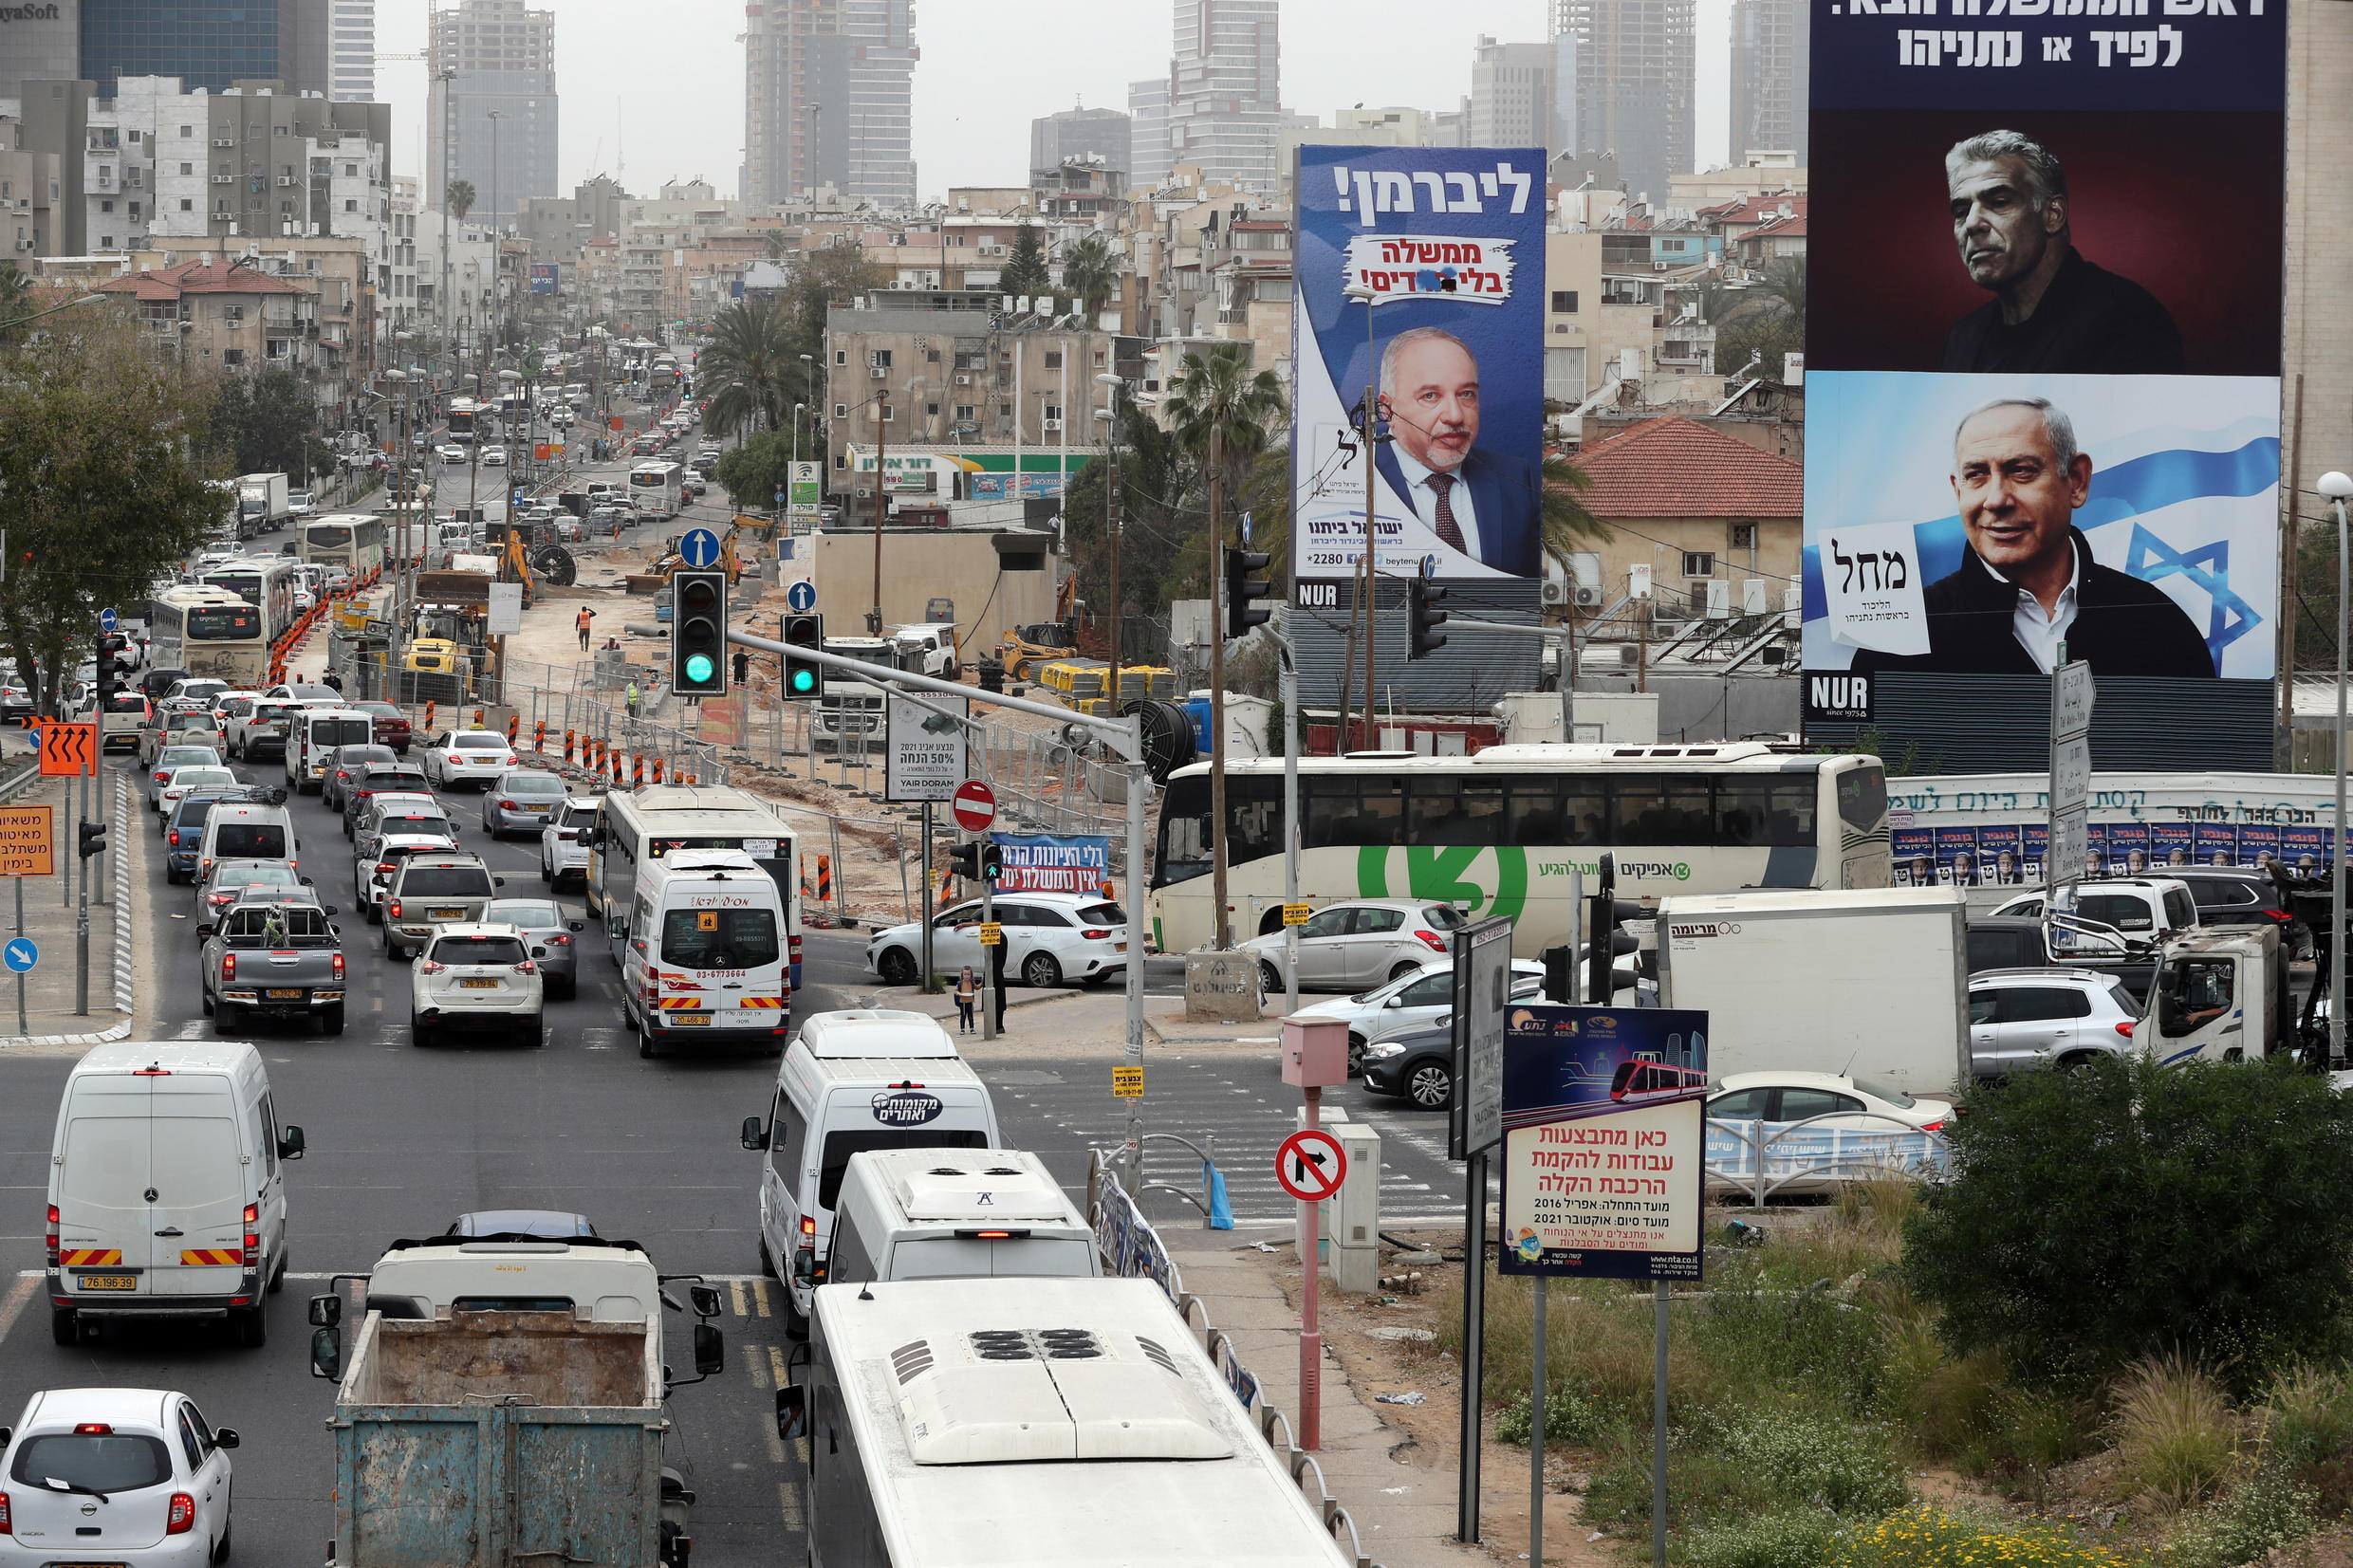 Image d'archive RFI : A Likud party election campaign banner depicting its leader, Israeli Prime Minister Netanyahu, and his challenger, Yesh Atid party leader Lapid, as well as an Yisrael Beitenu party election campaign banner, are seen ahead of March 23 ballot in Bnei Brak.